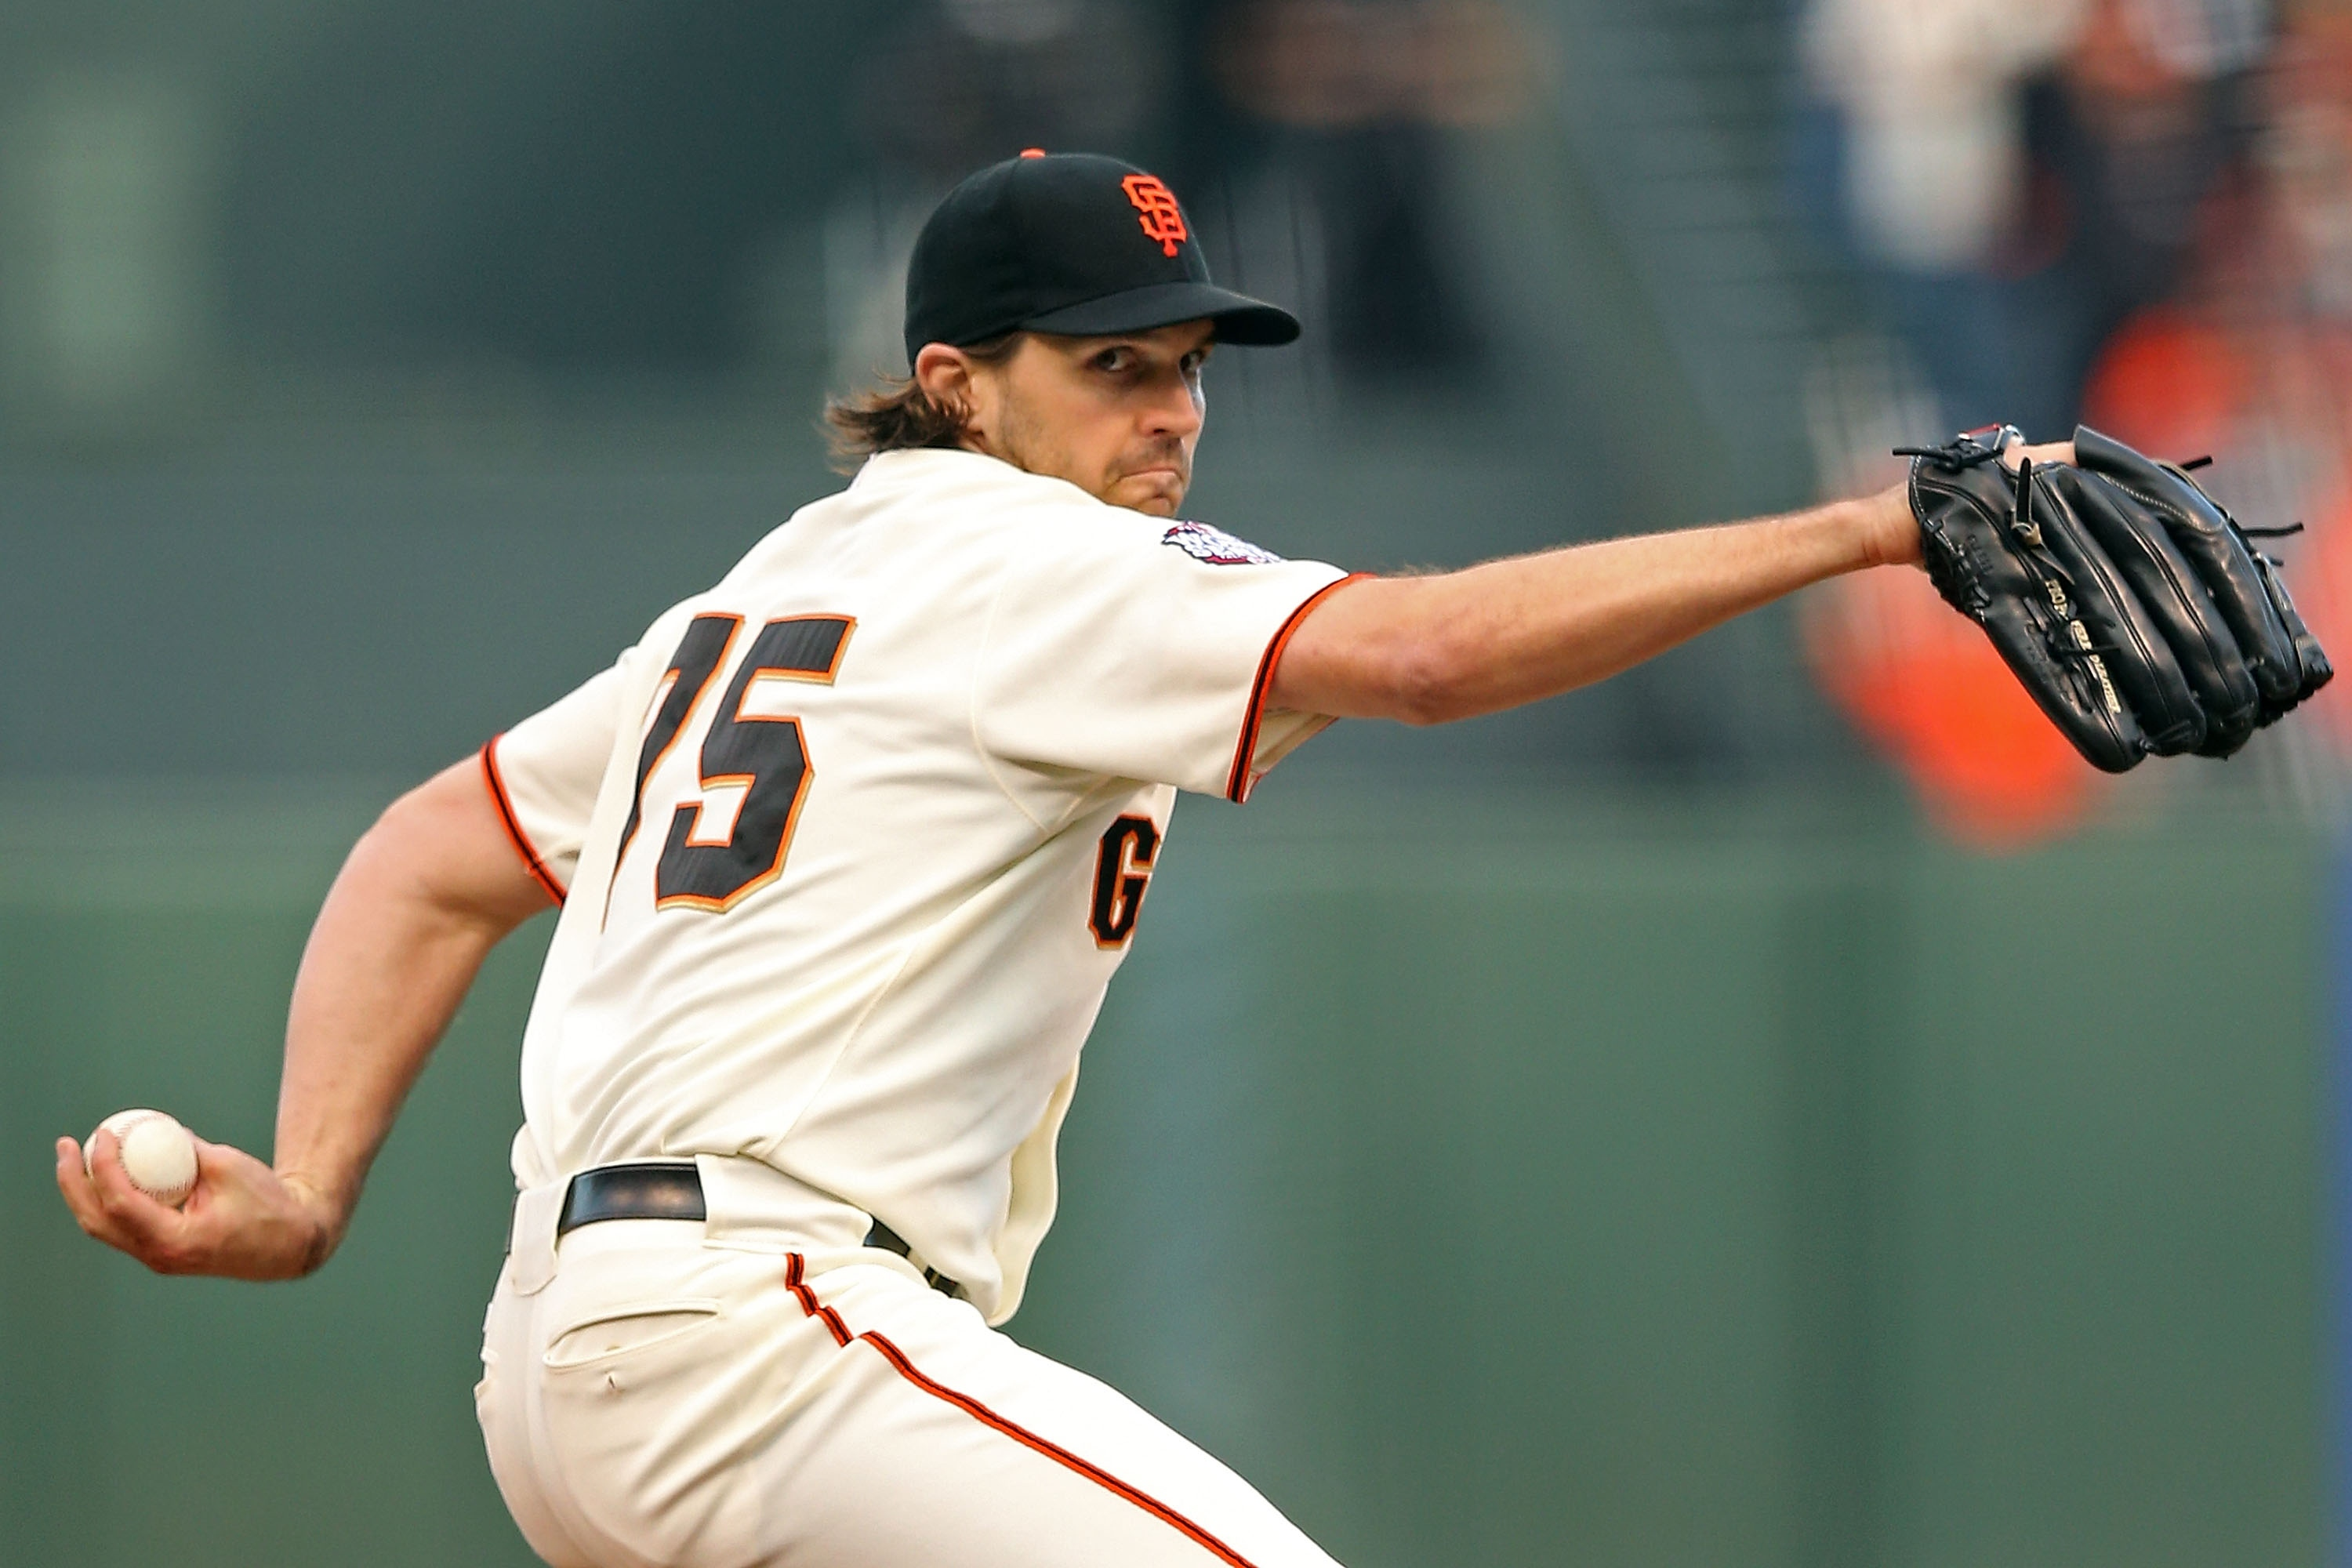 Barry Zito held the Tigers to one run and six hits in 5 2/3 innings in Game 1. (Getty Images)